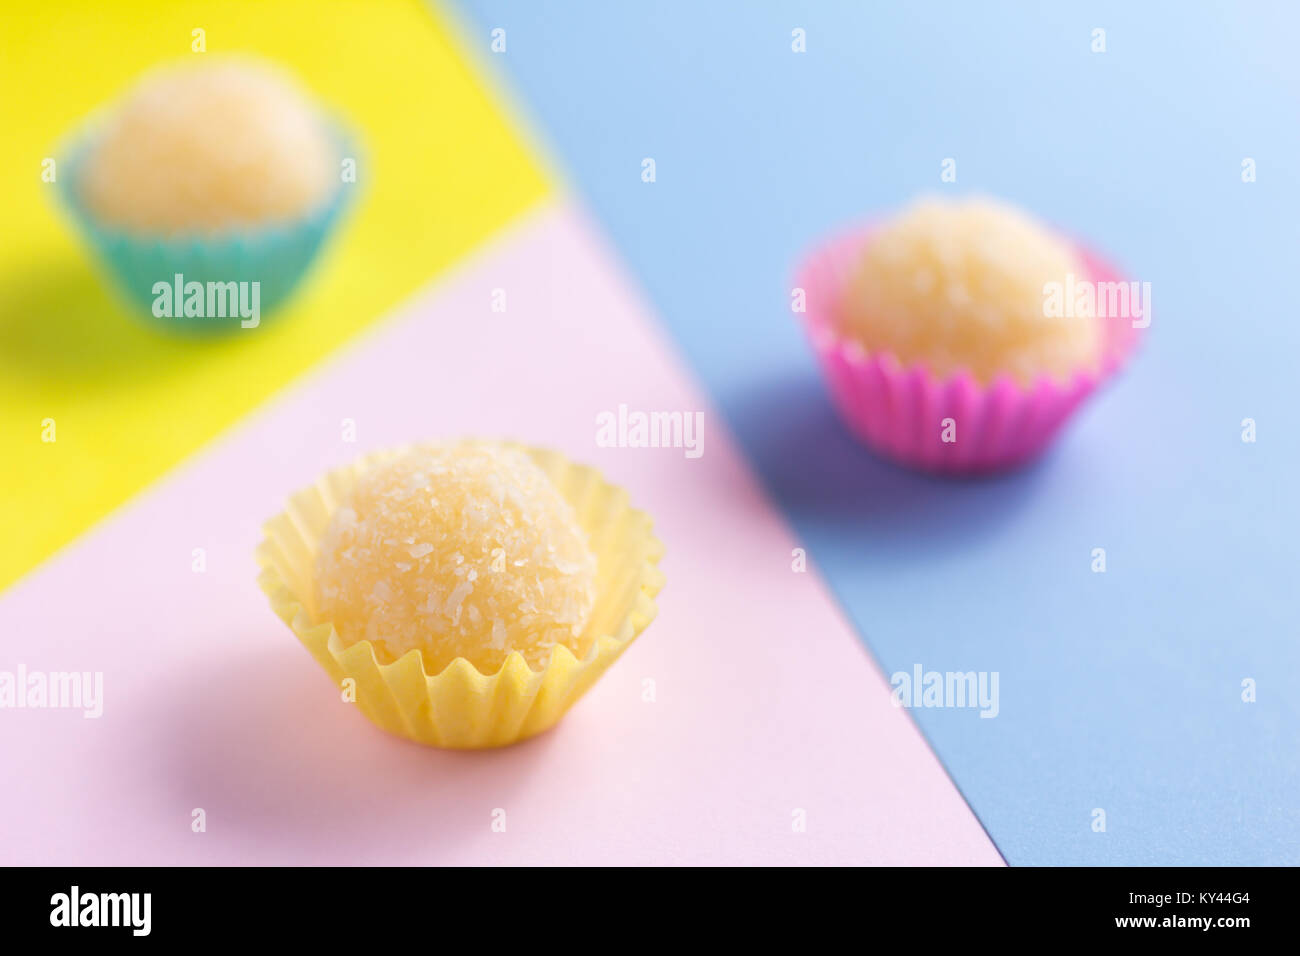 Beijinho is a handmade candy from Brazil. Made with condensed milk and coconut. Children brithday party sweet. Spread Stock Photo